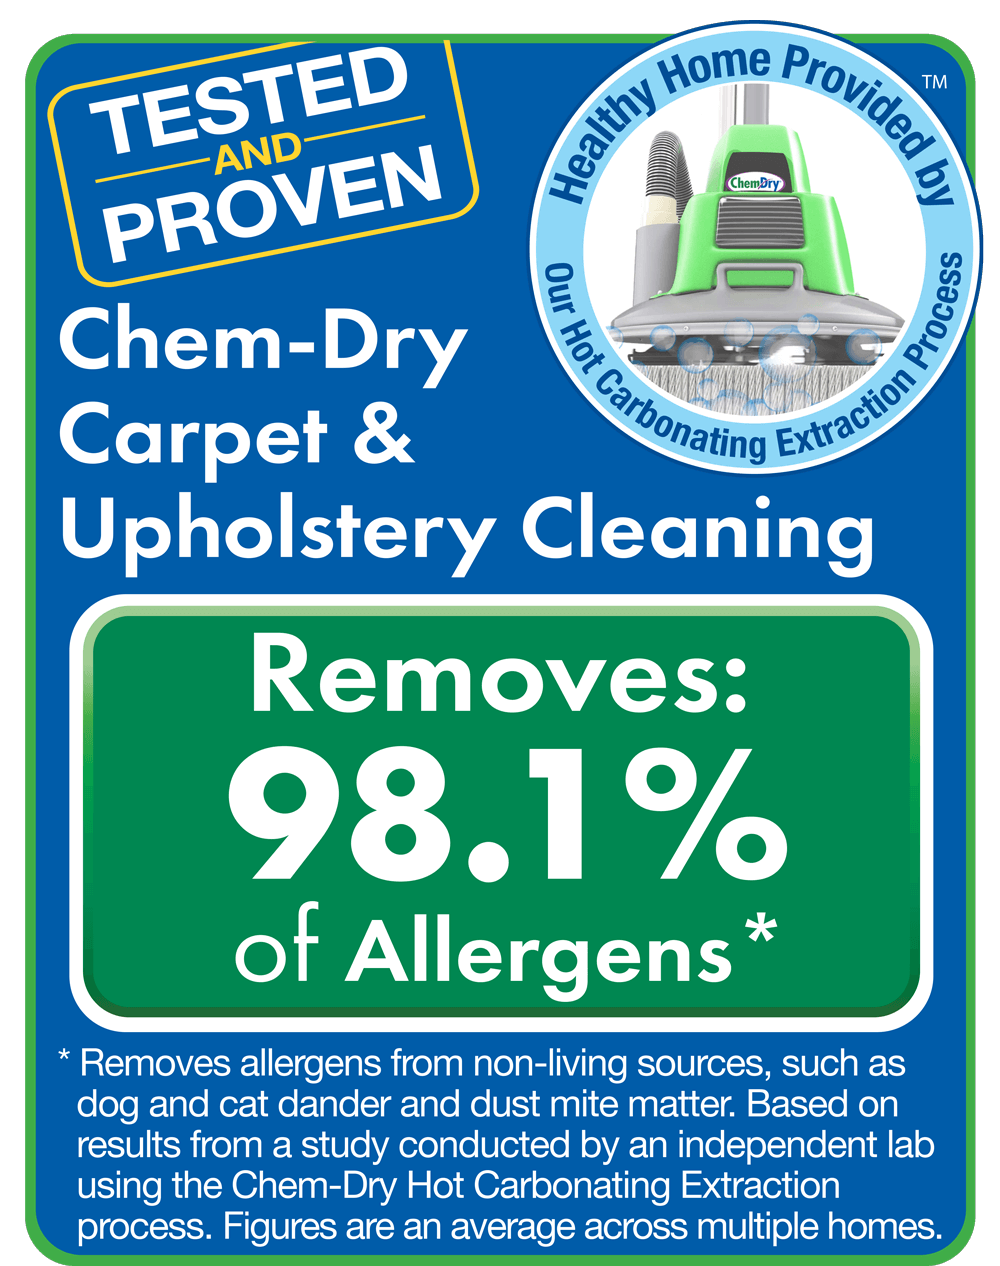 chem-dry upholstery cleaner in Edmonds tested and proven to remove 98% of allergens